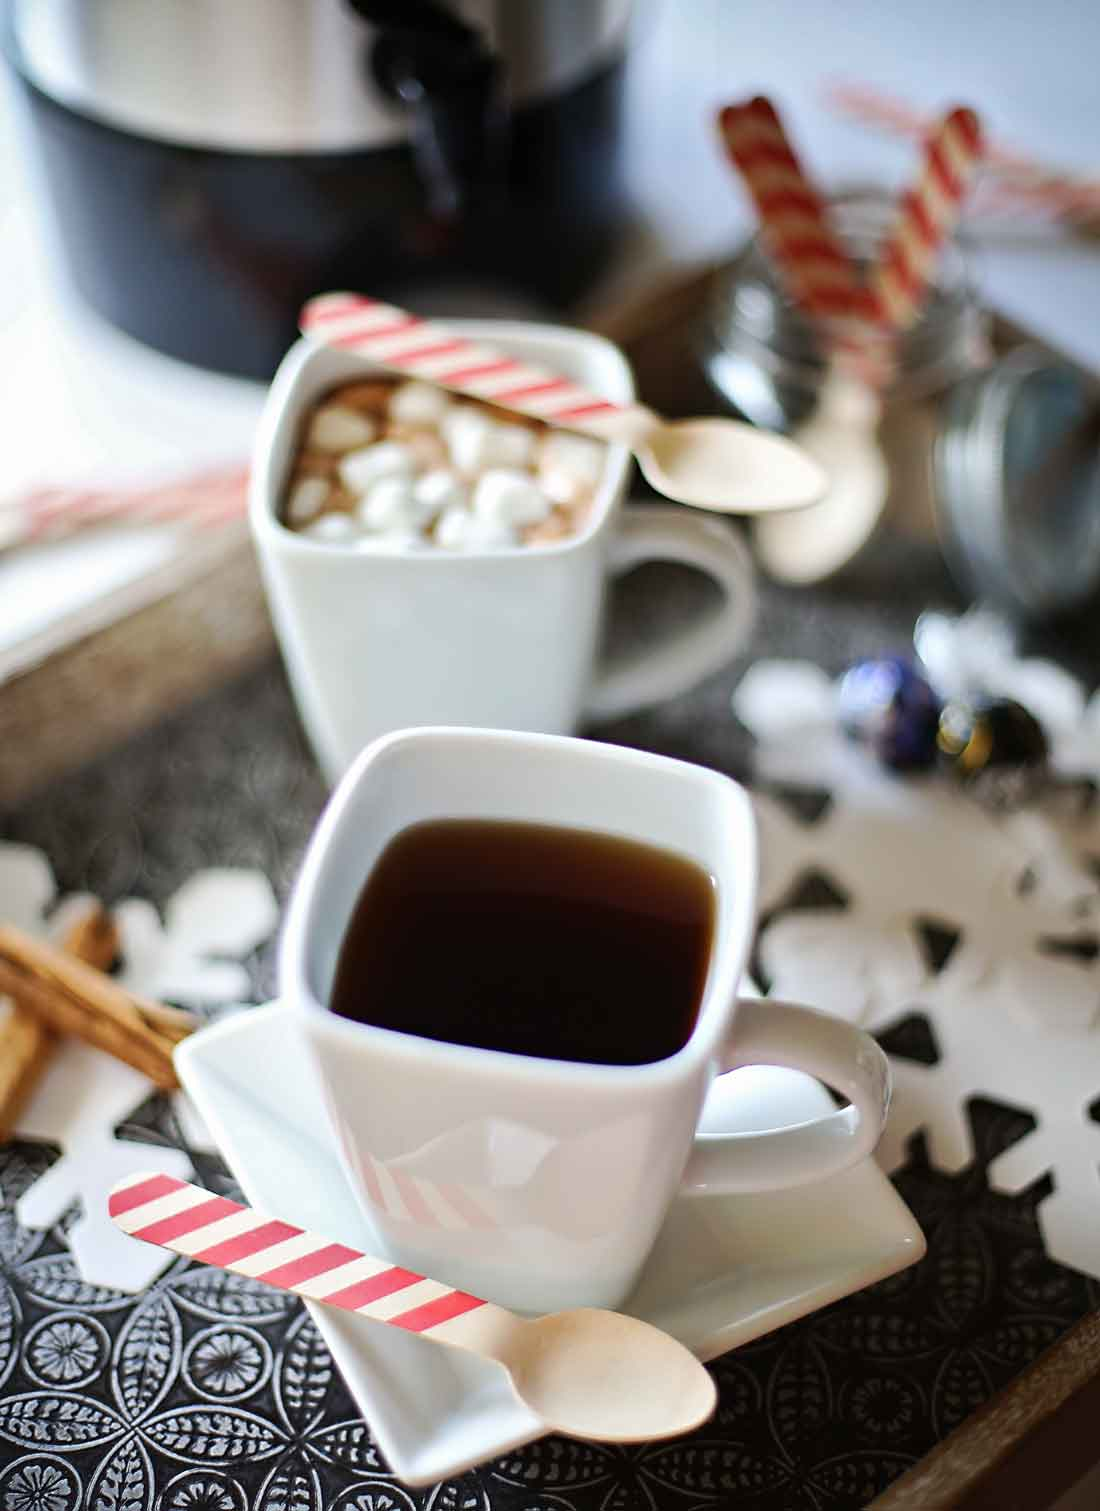 Hot coffee and hot cocoa bar tutorial and recipes!